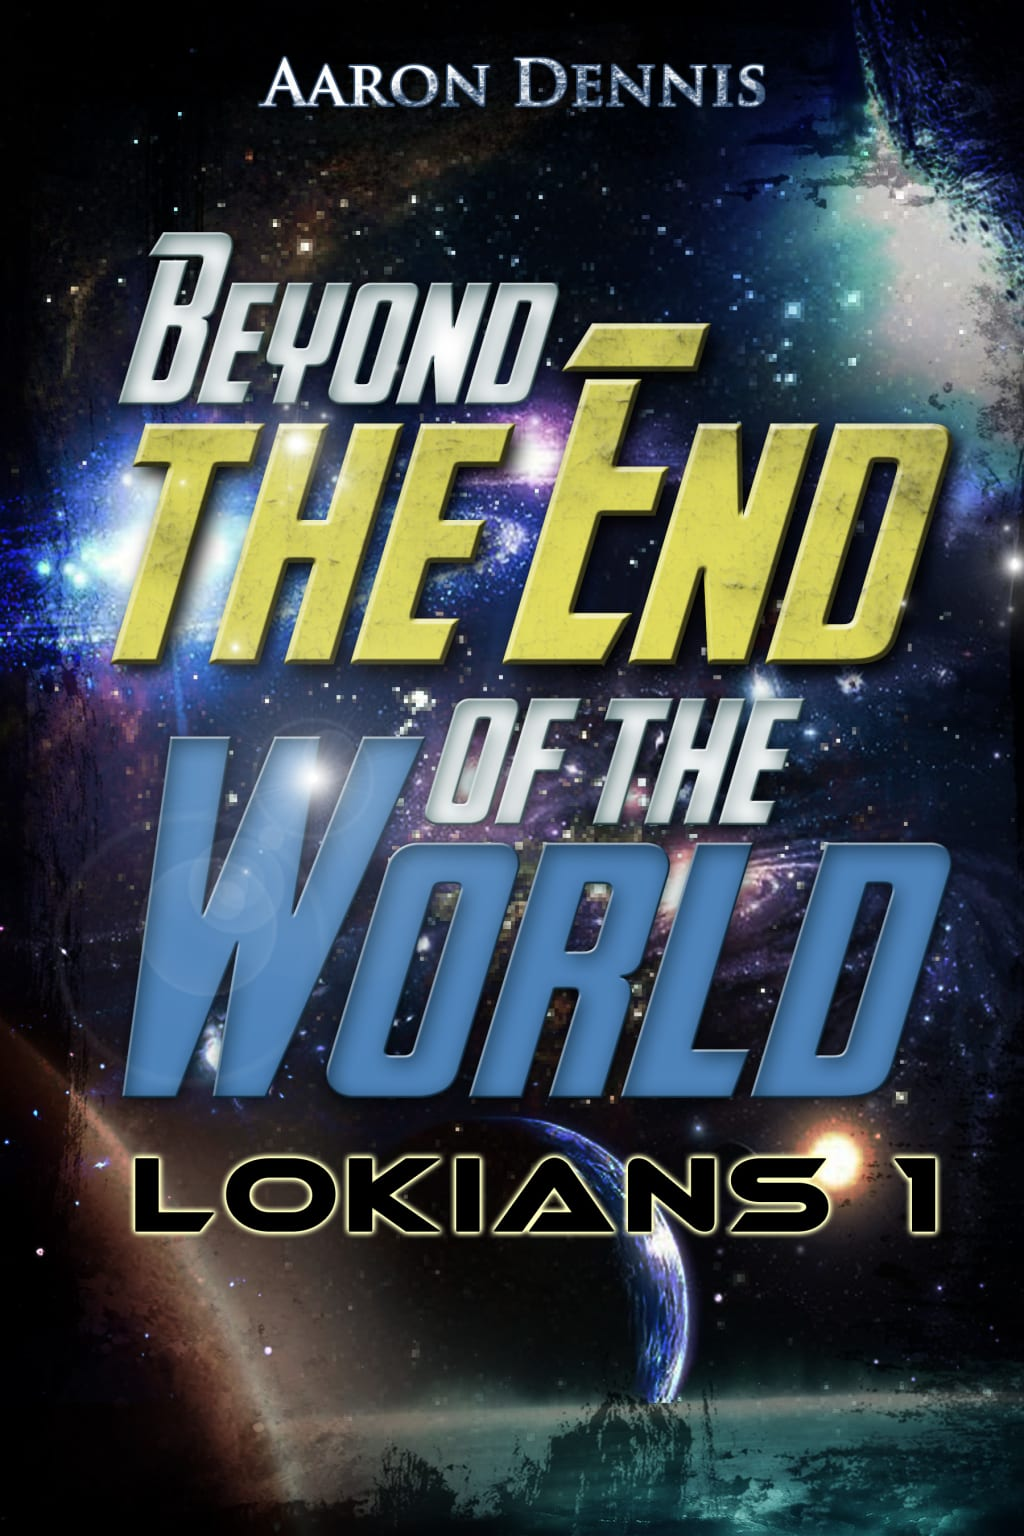 Part 4 of Beyond the End of the World, Lokians 1